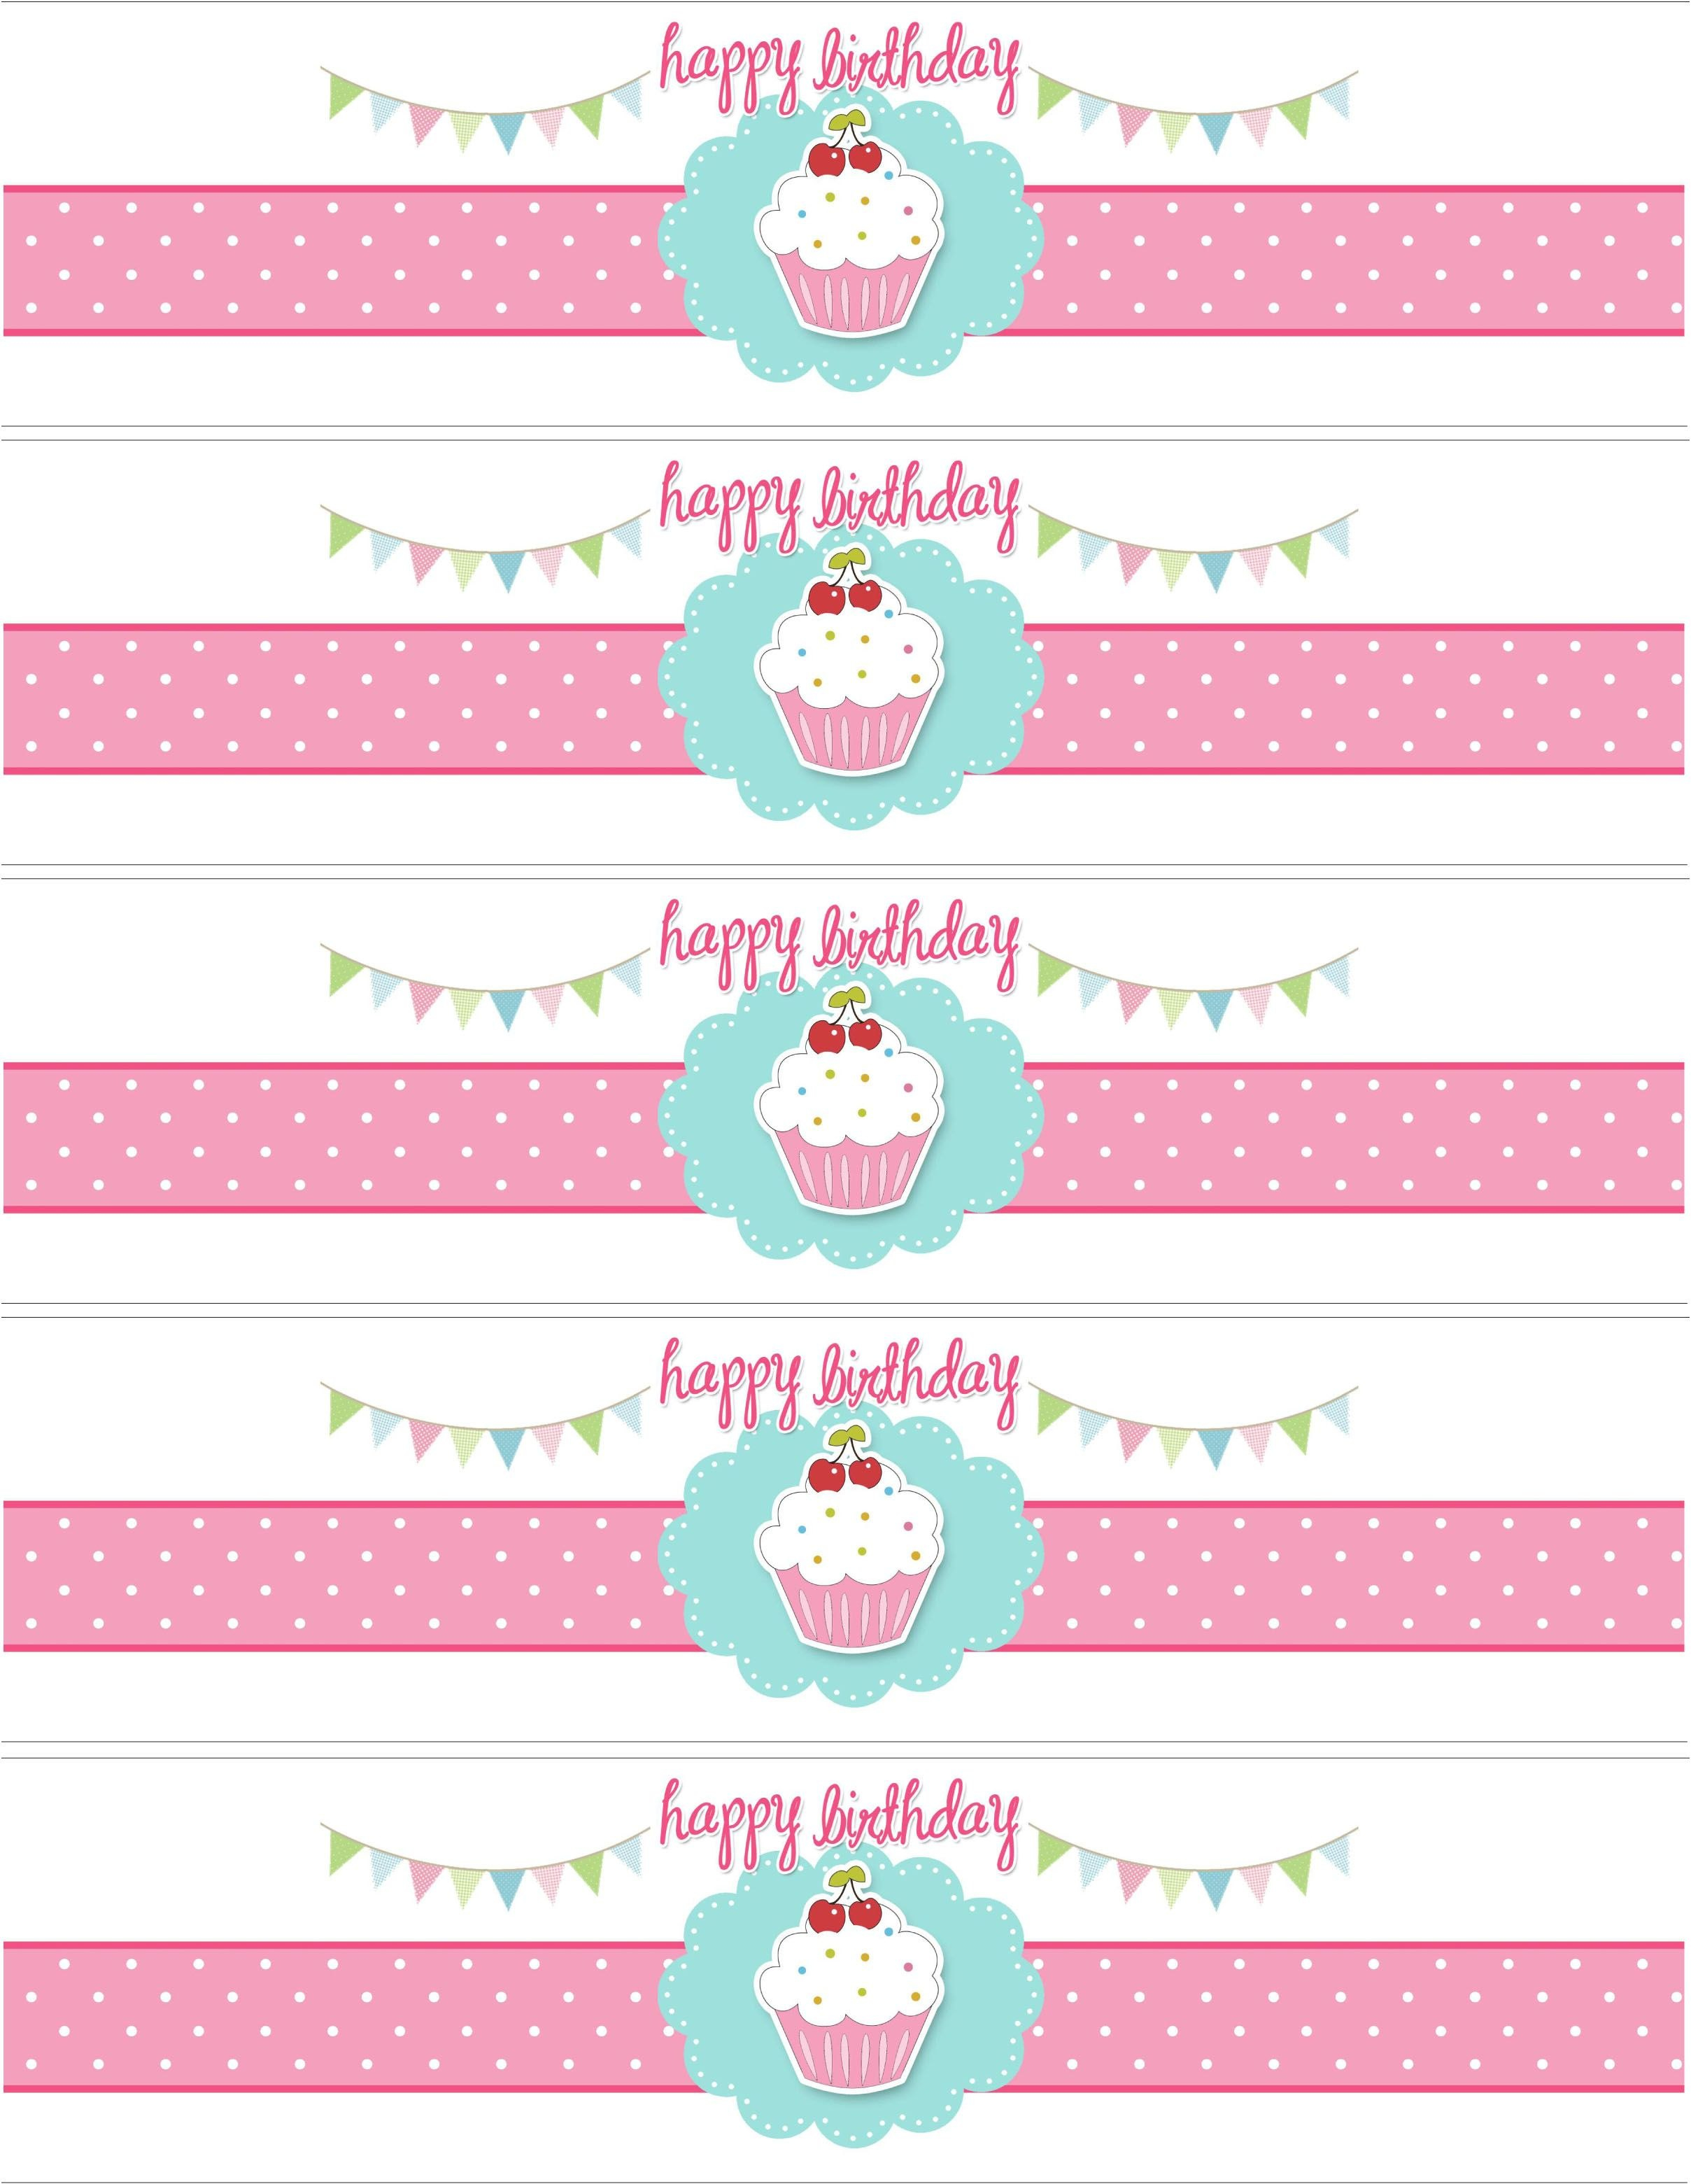 Cupcake Birthday Party With Free Printables  Party Ideas For Birthday Labels Template Free